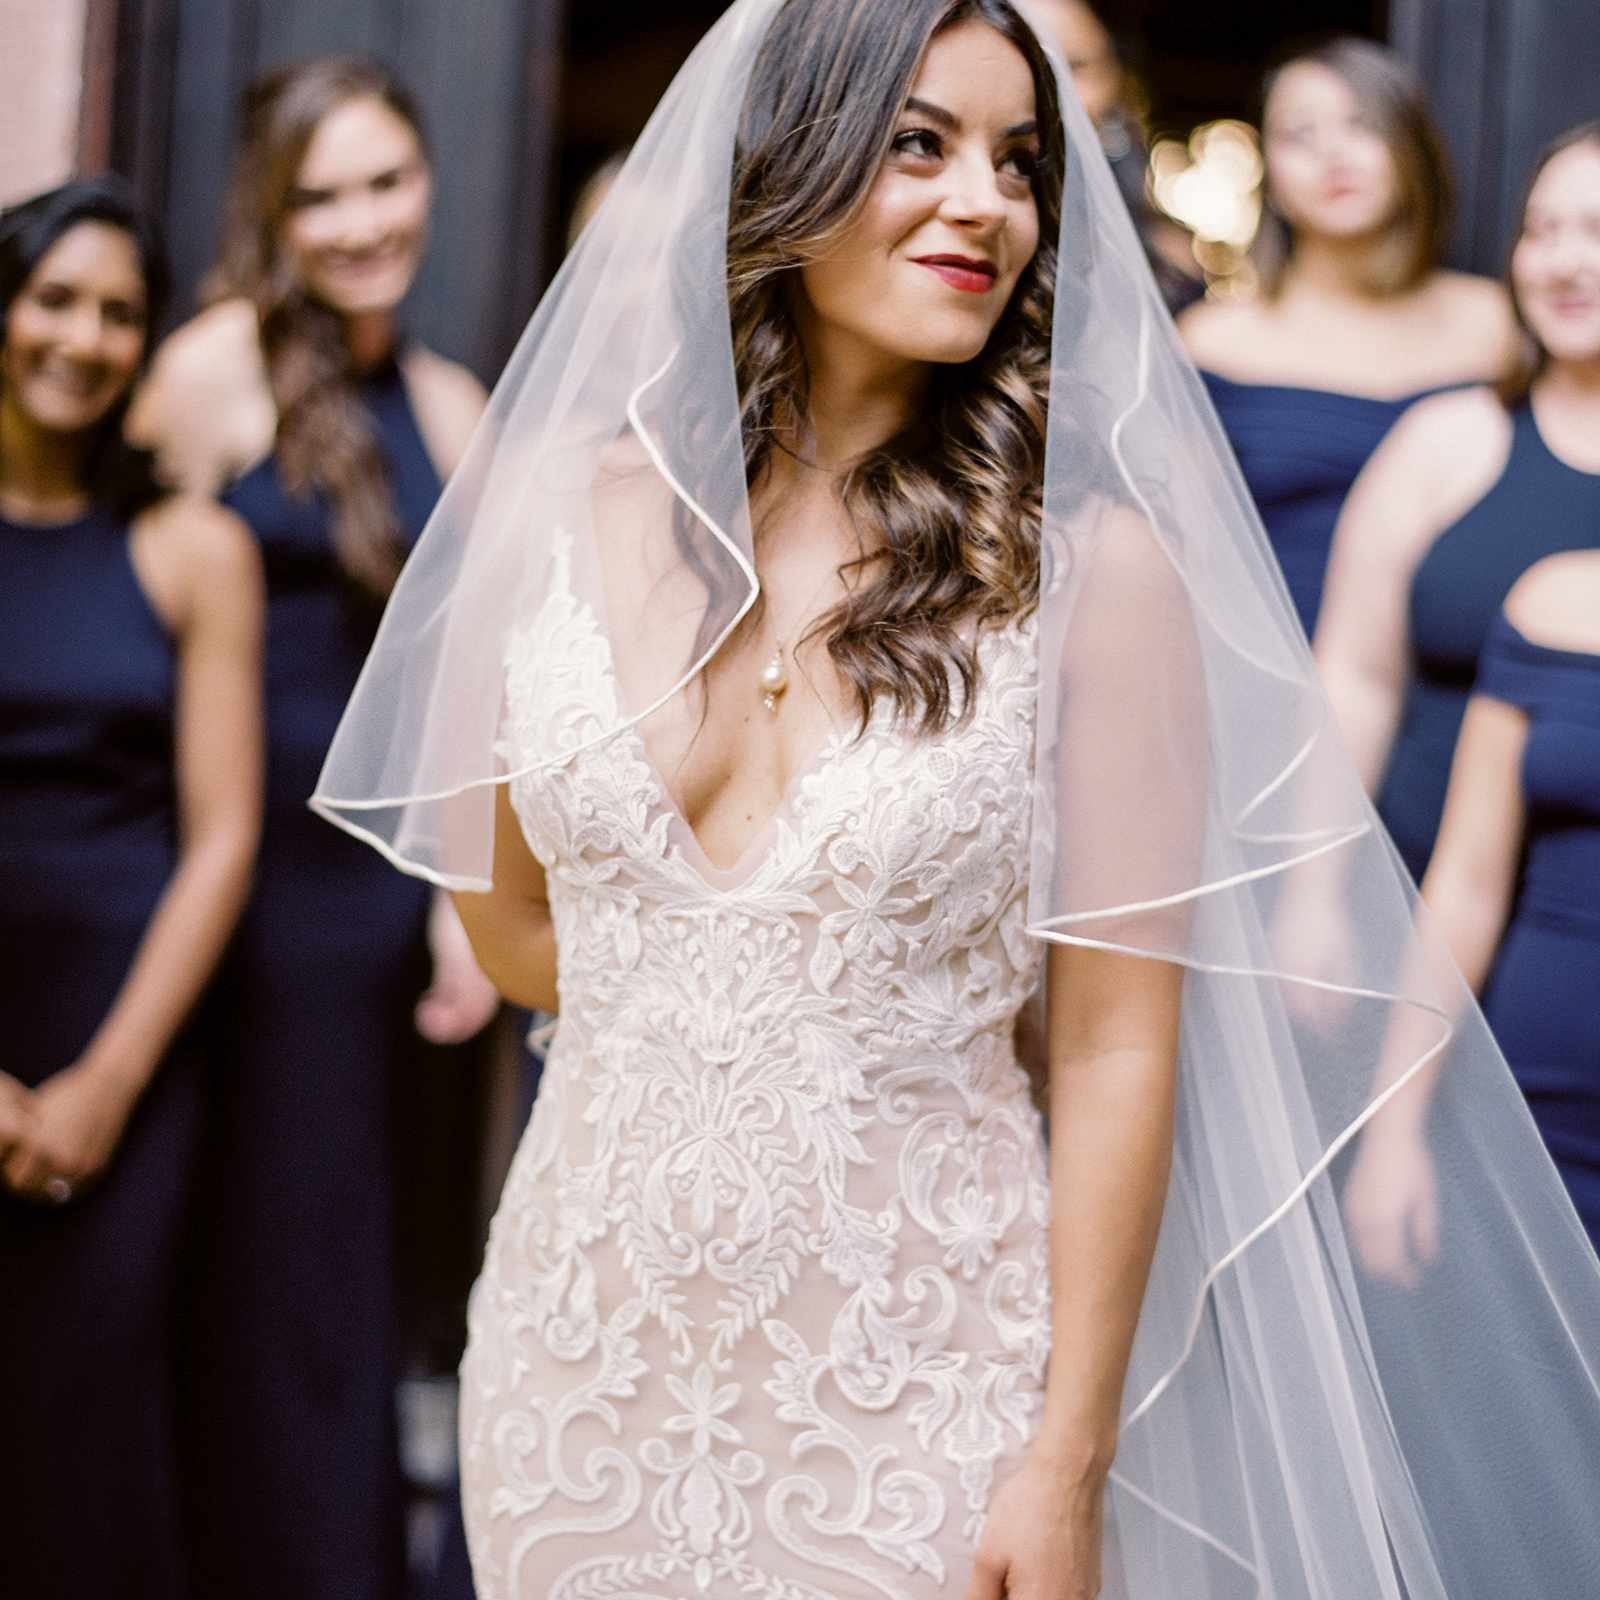 Bride in tiered veil and intricate dress